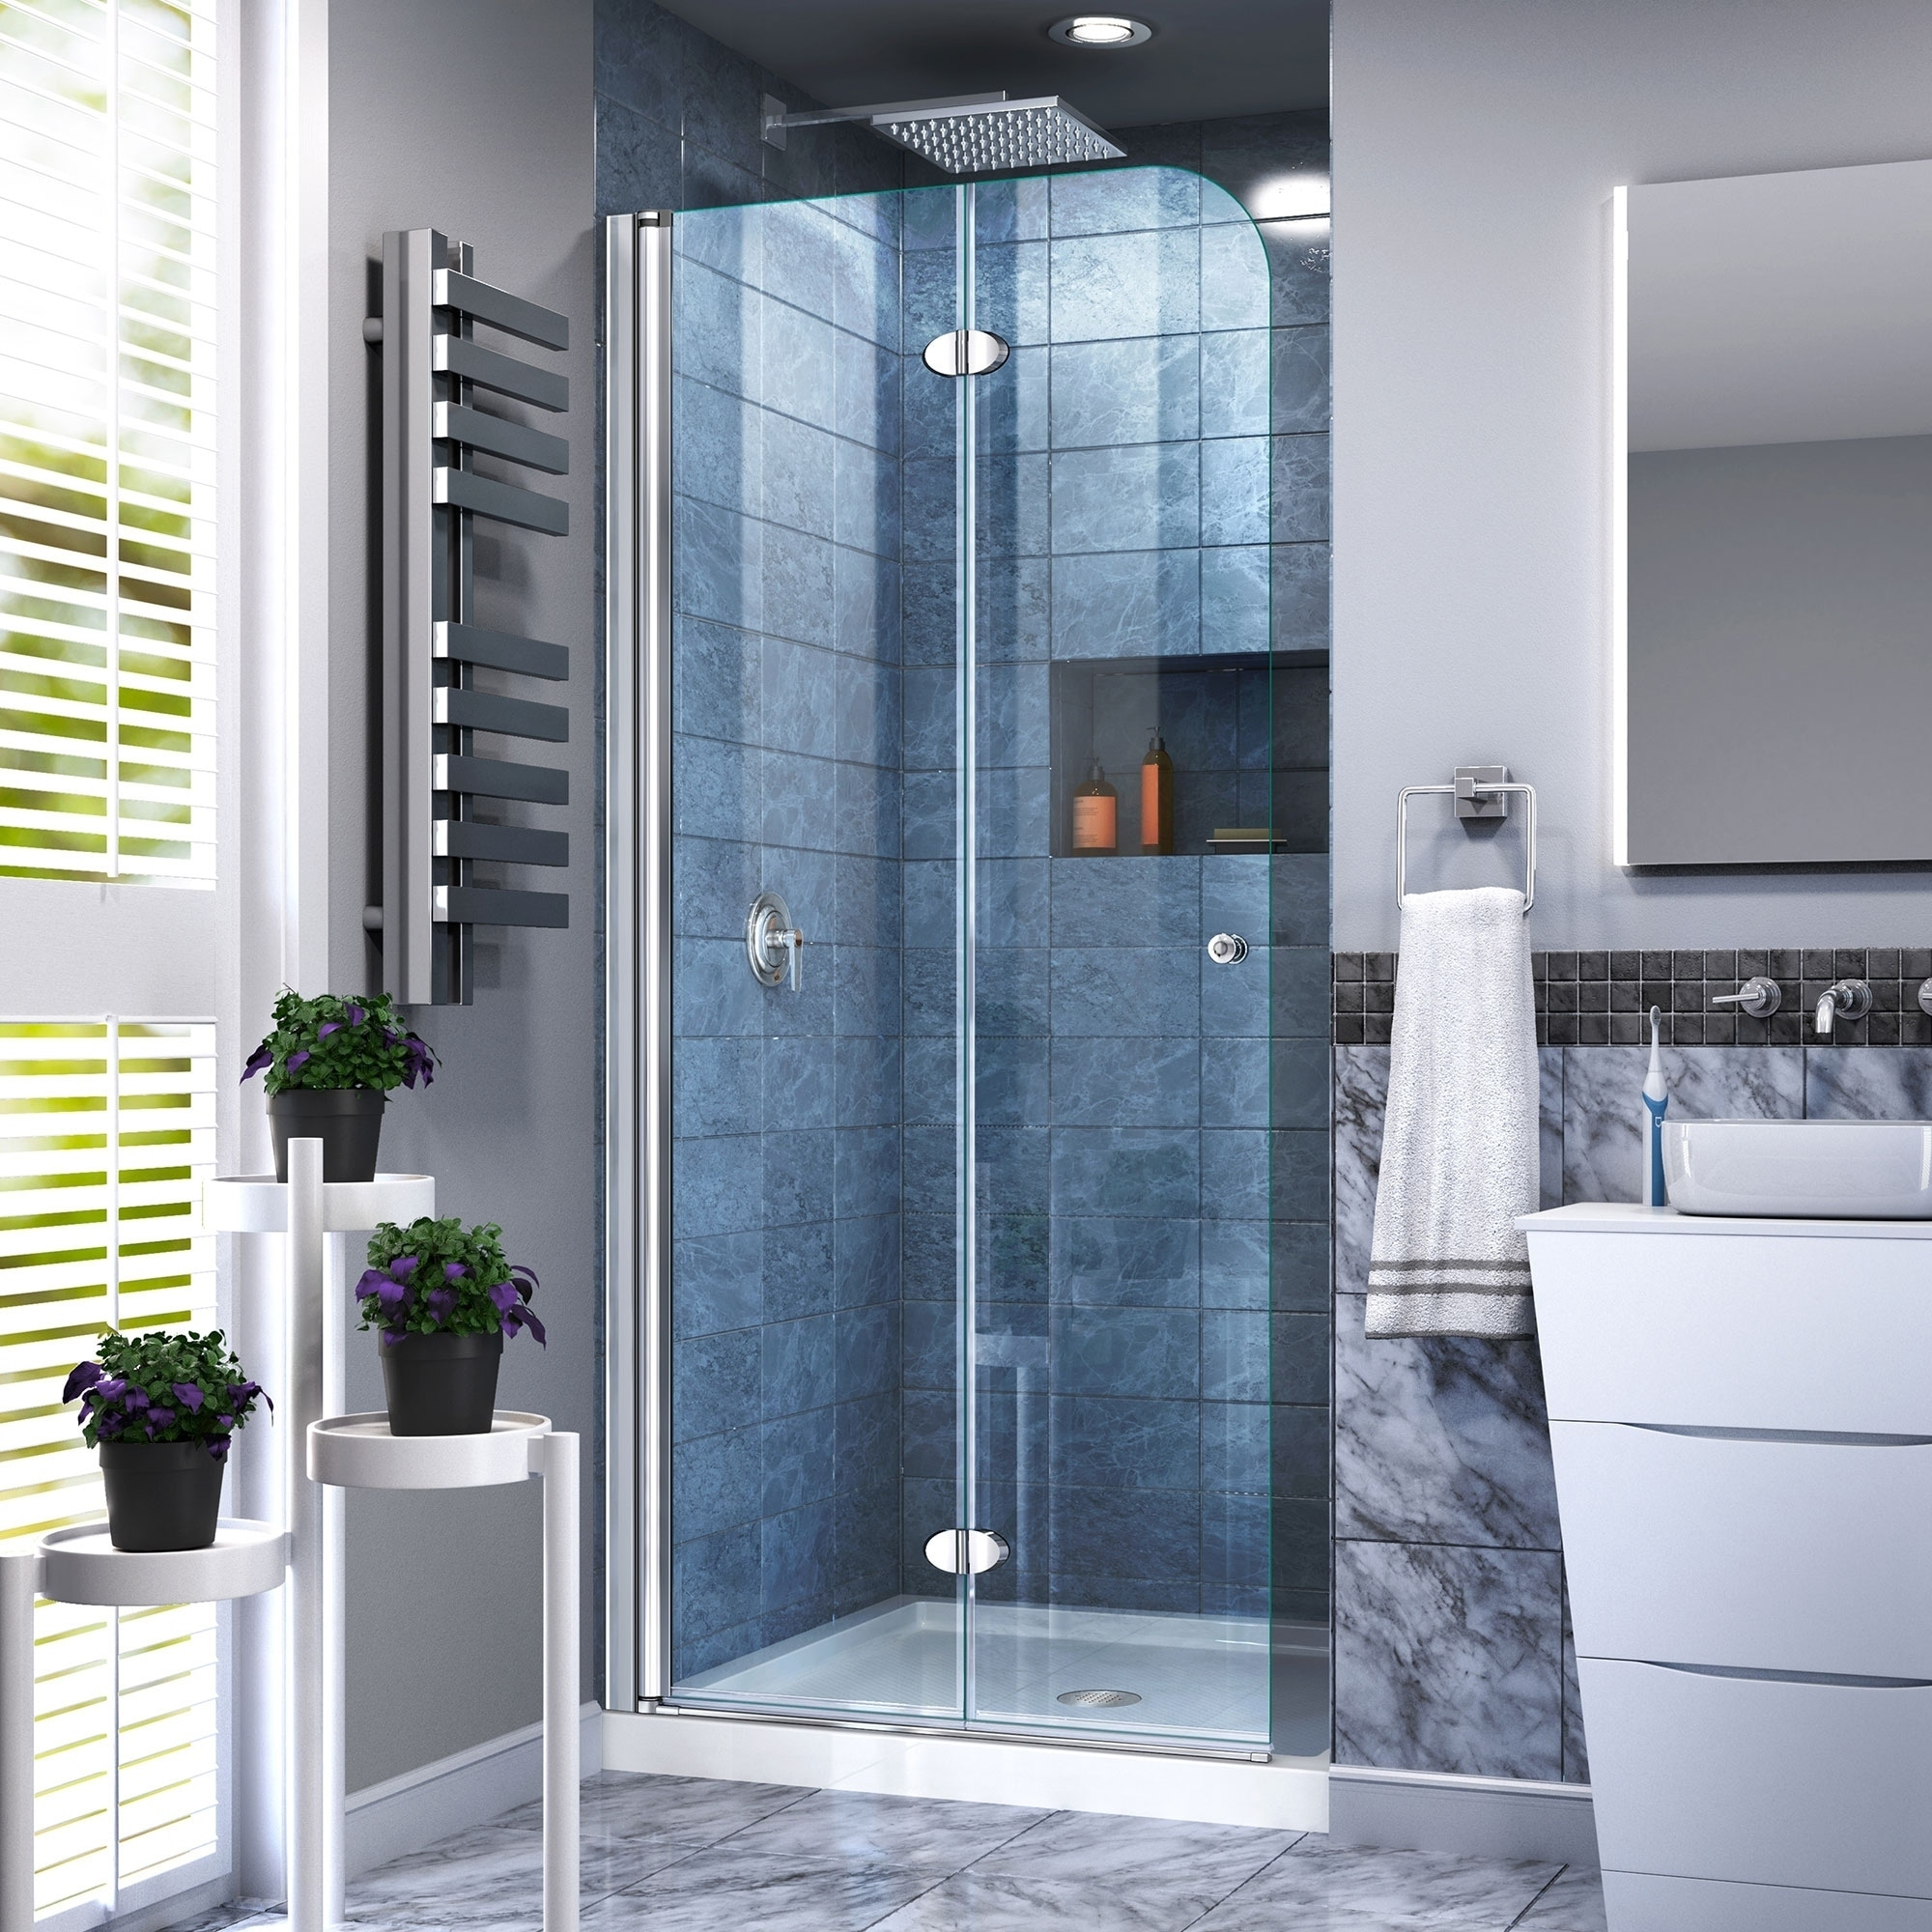 Buy 36 x 36, Acrylic Shower Stalls & Kits Online at Overstock.com ...